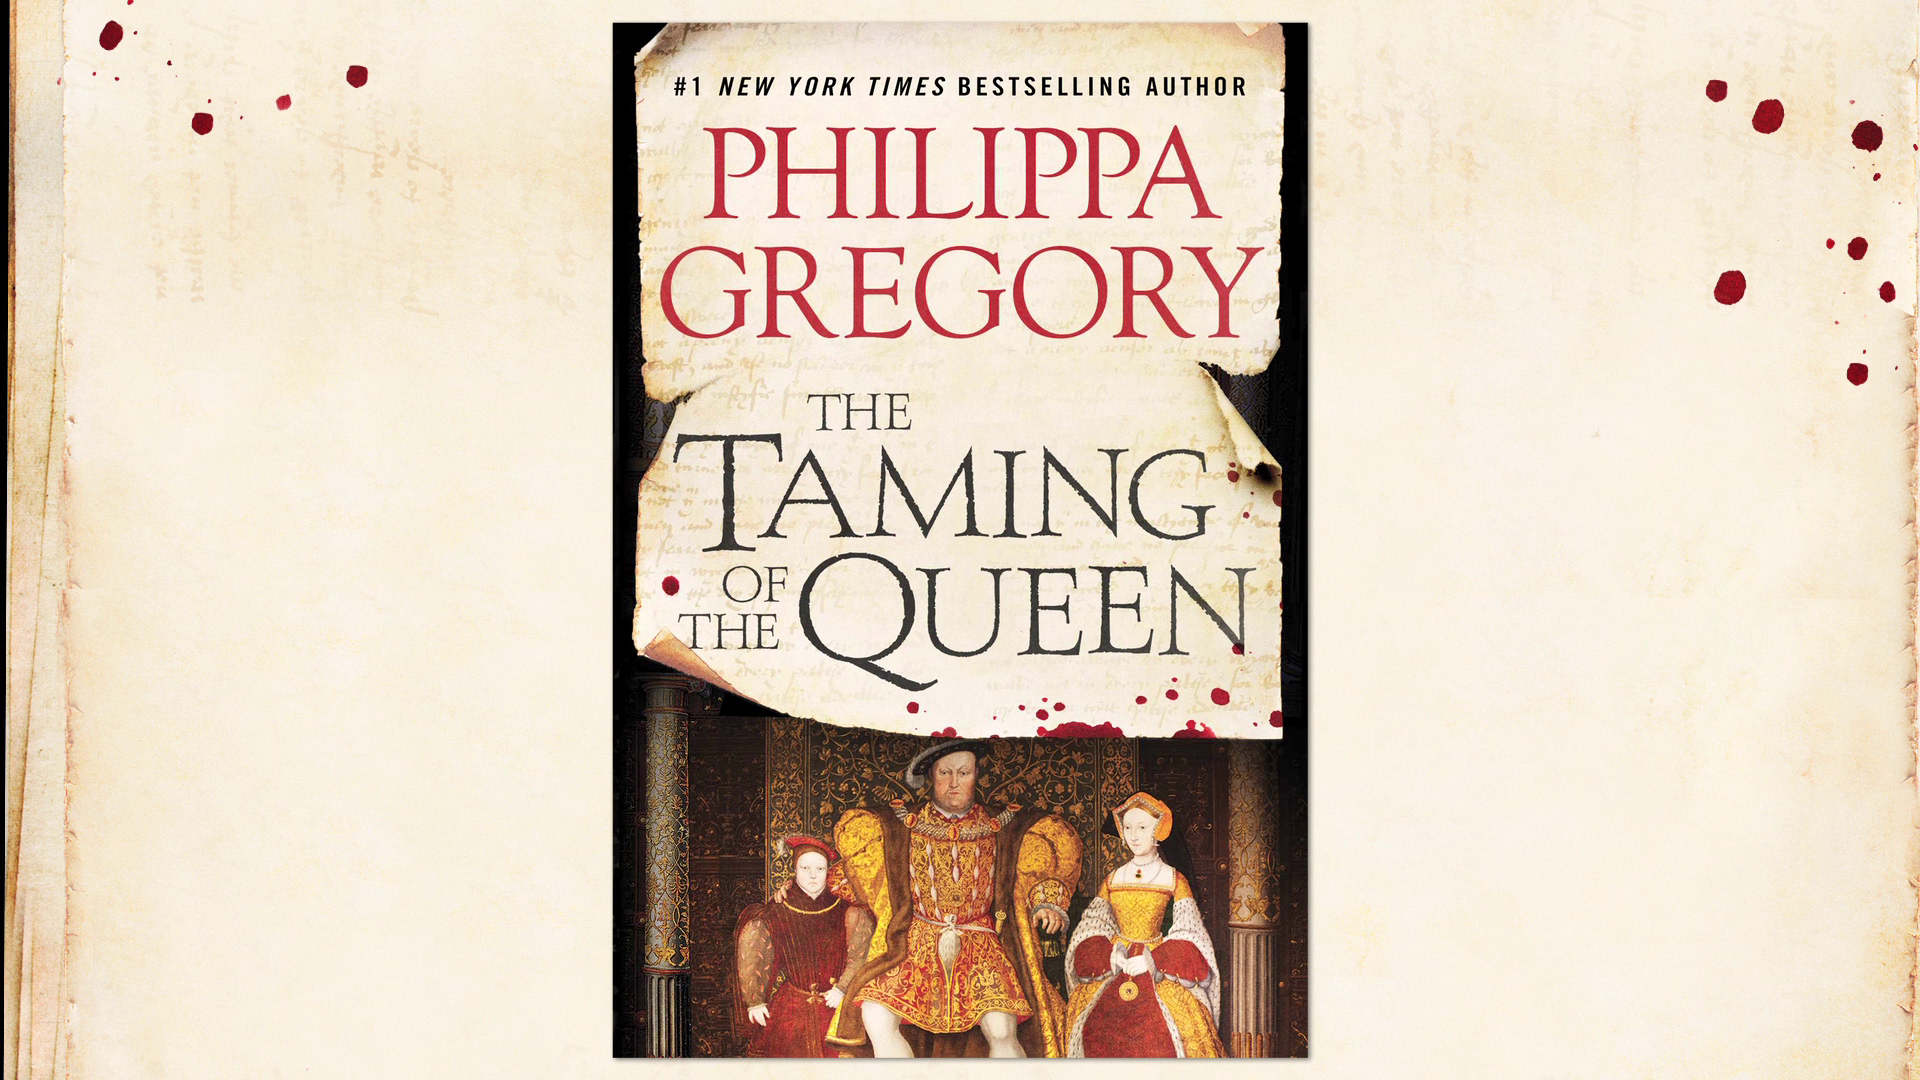 Philippa Gregory Introduces 'The Taming of the Queen'